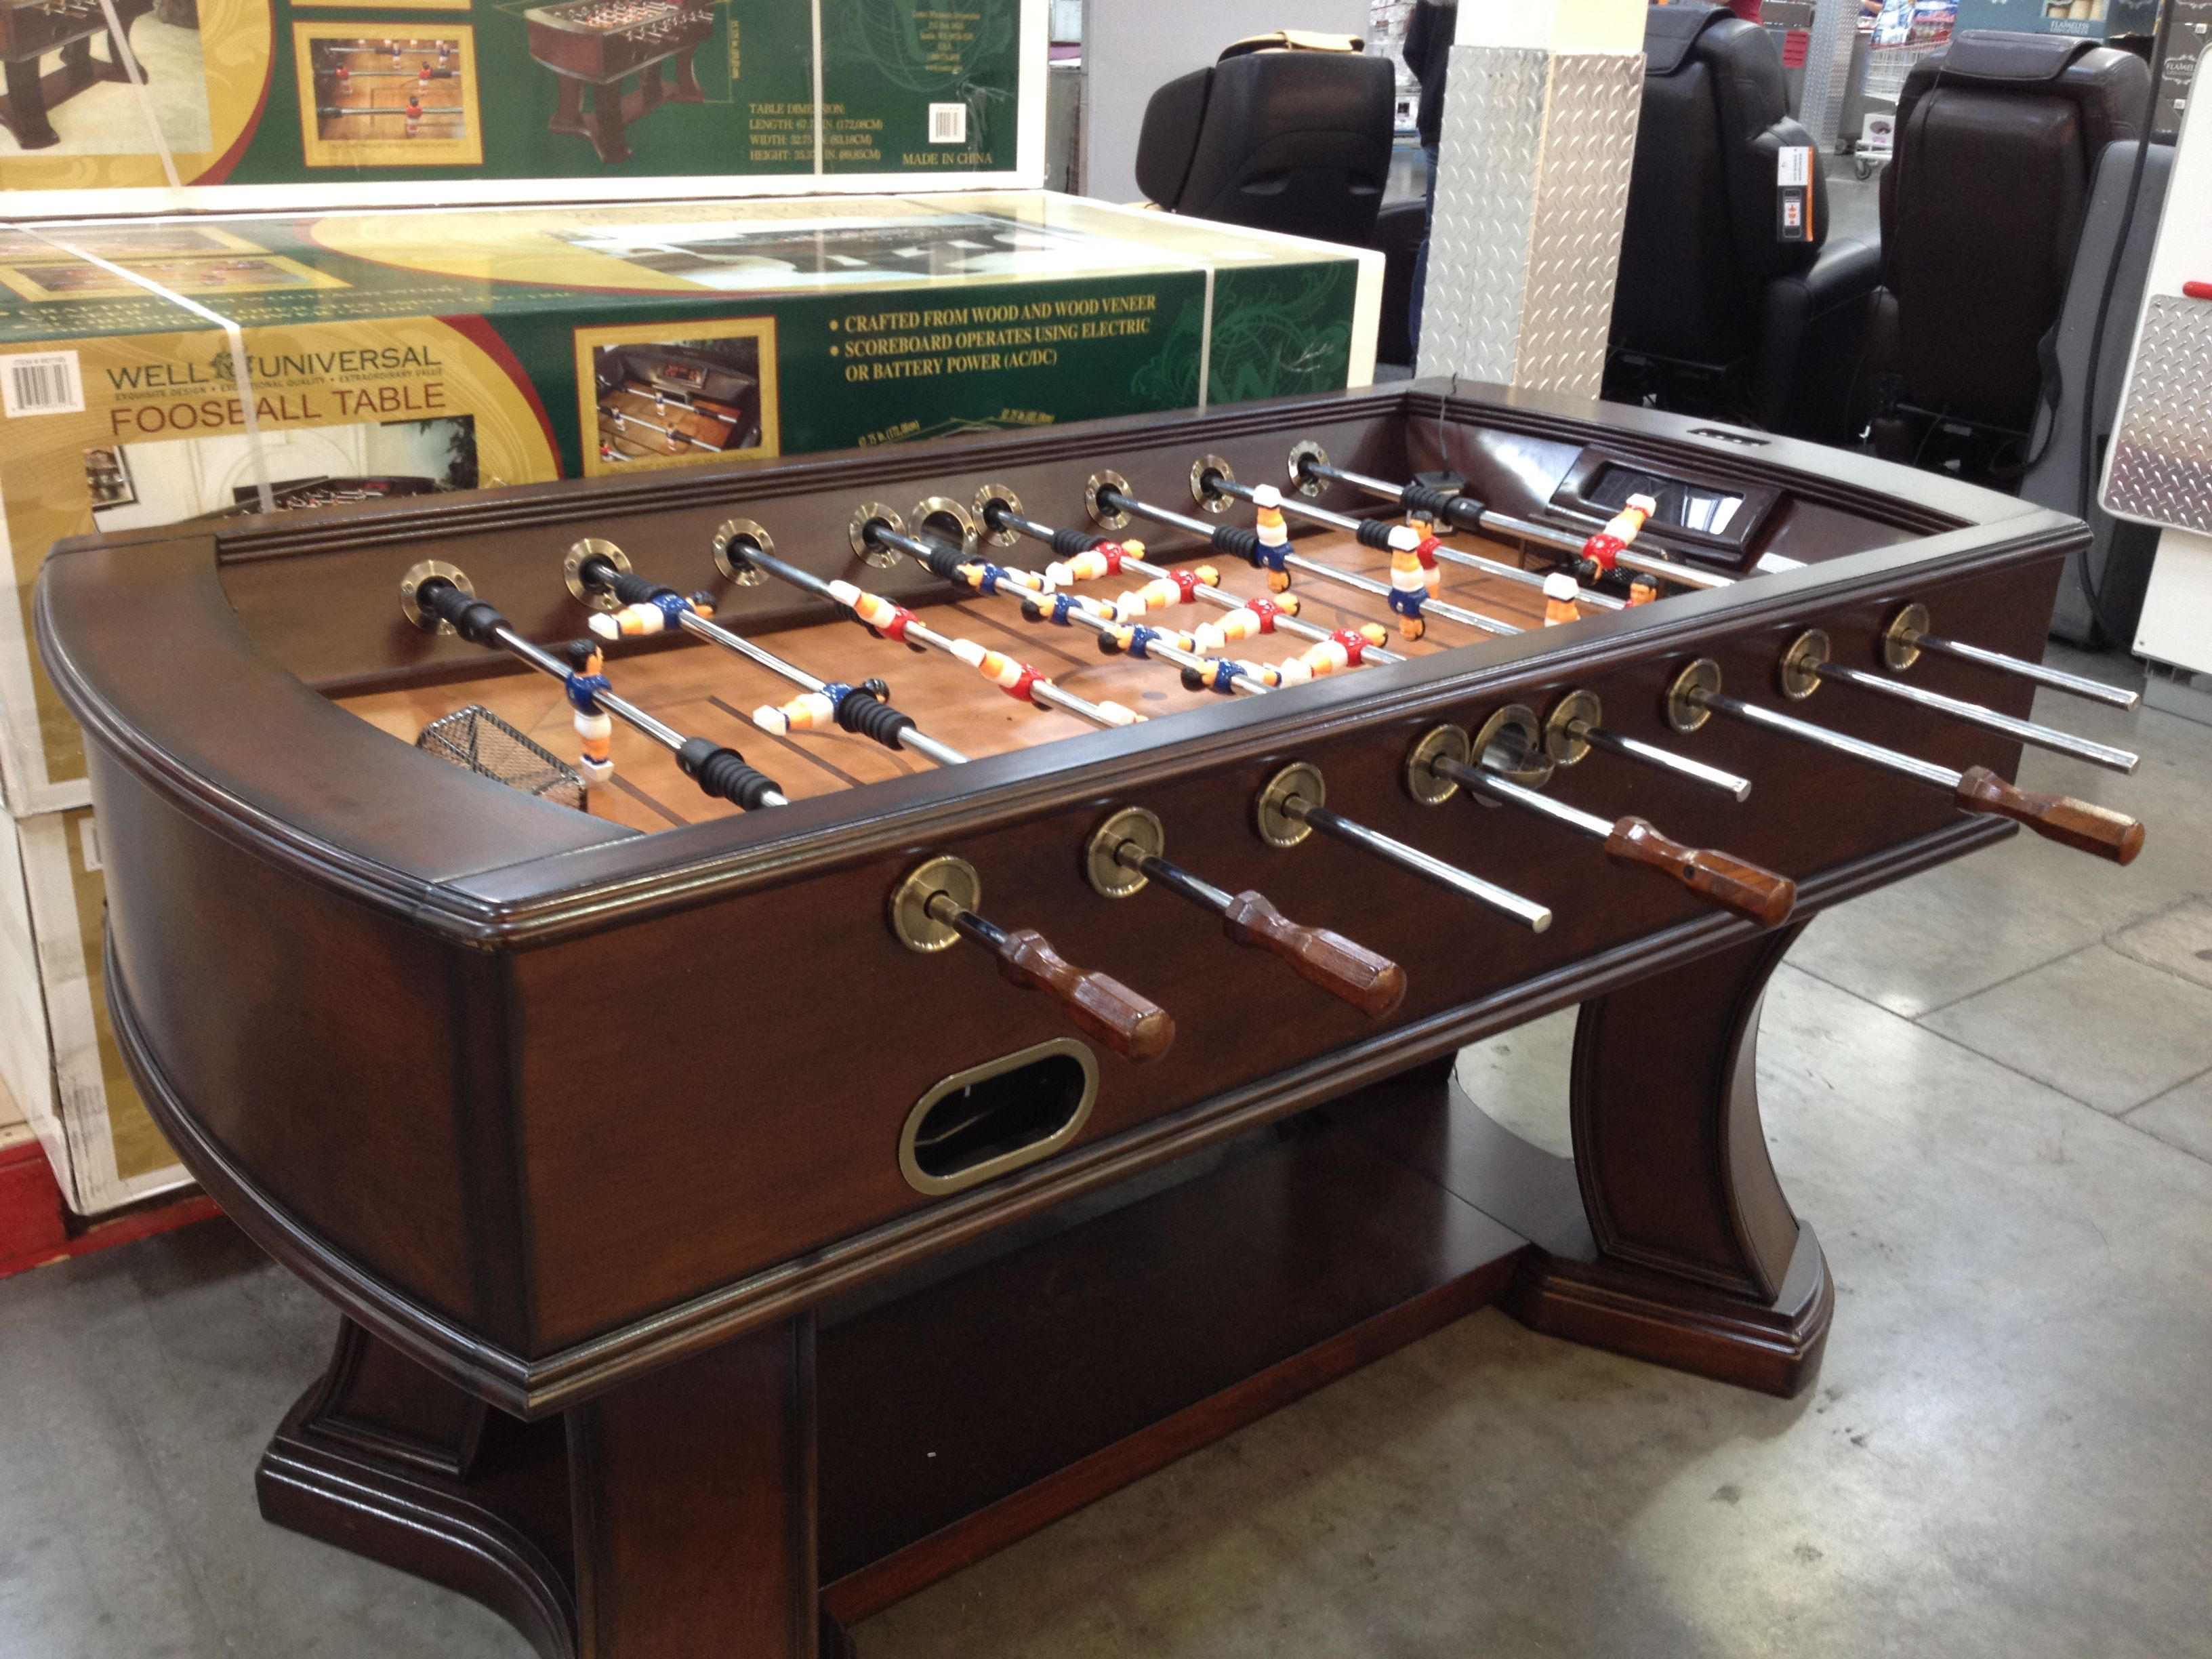 Foosball table with electronic scoring $450 at Costco